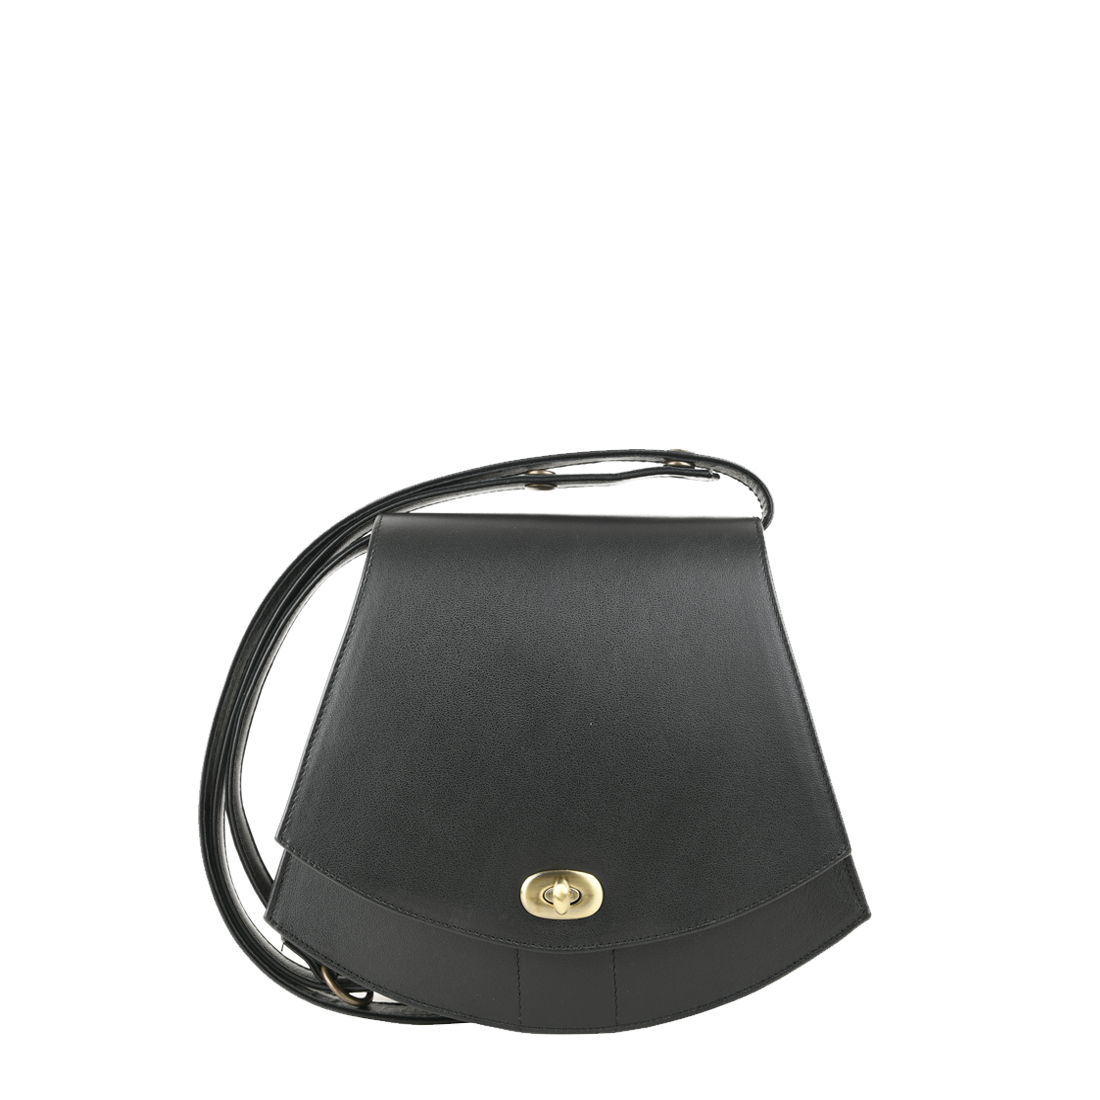 Bonnie Black Leather Shoulder Bag